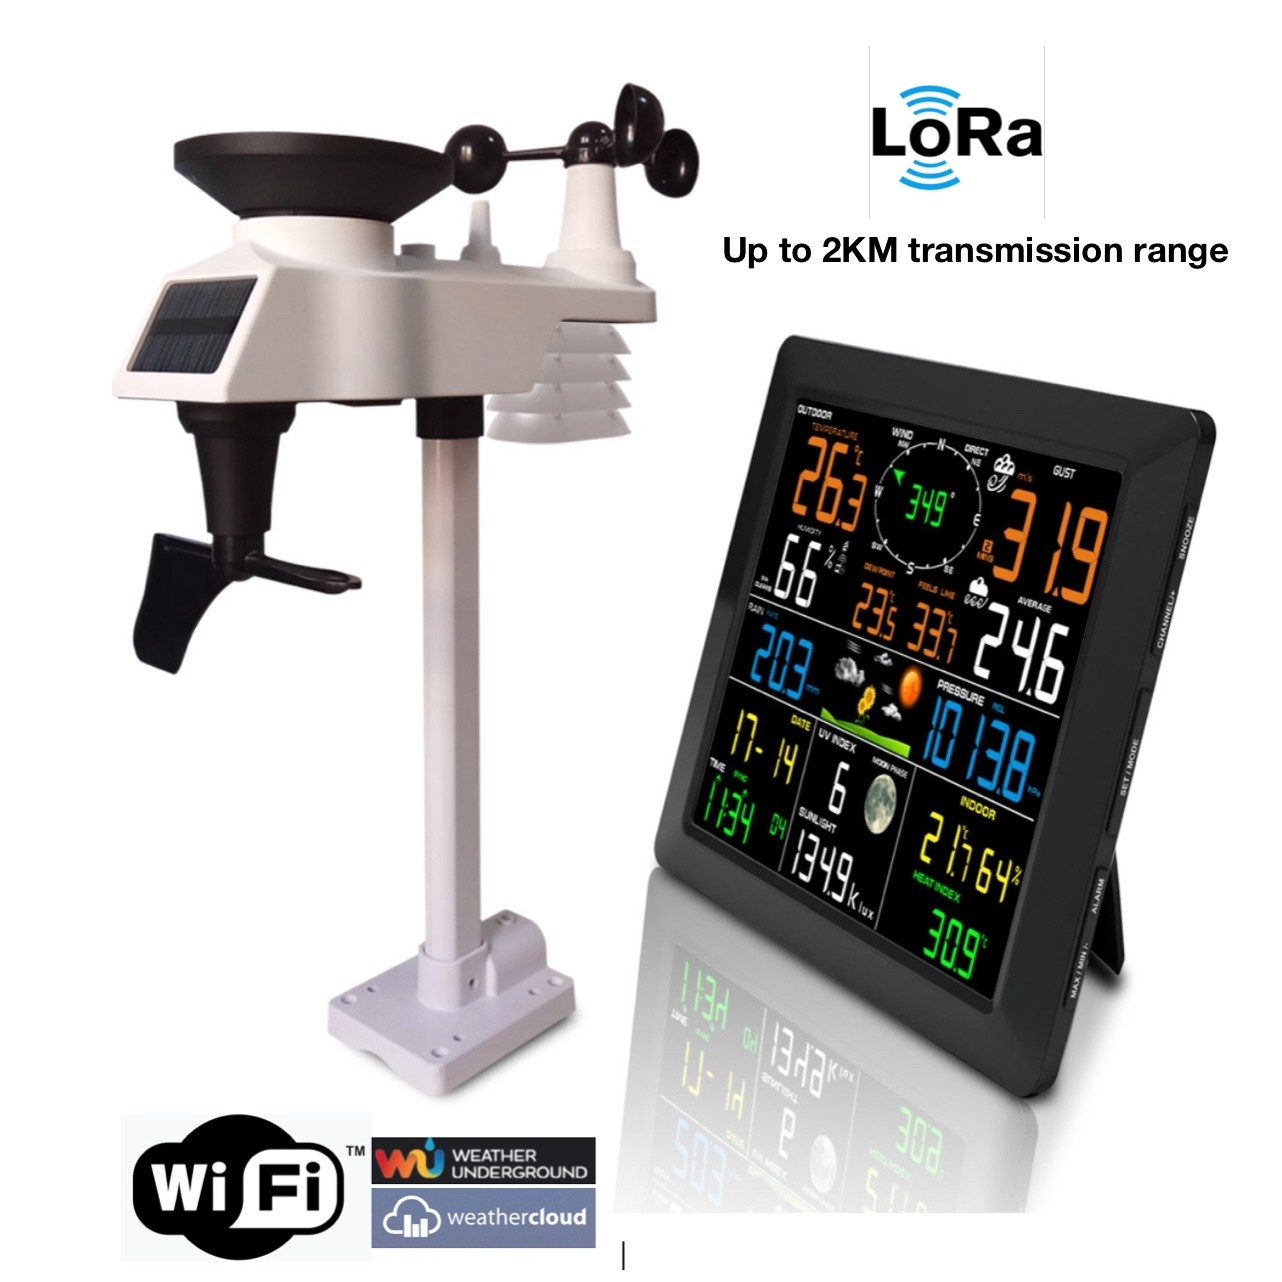 FT-0310L-wifi Lora and Wifi Professional Weather Station